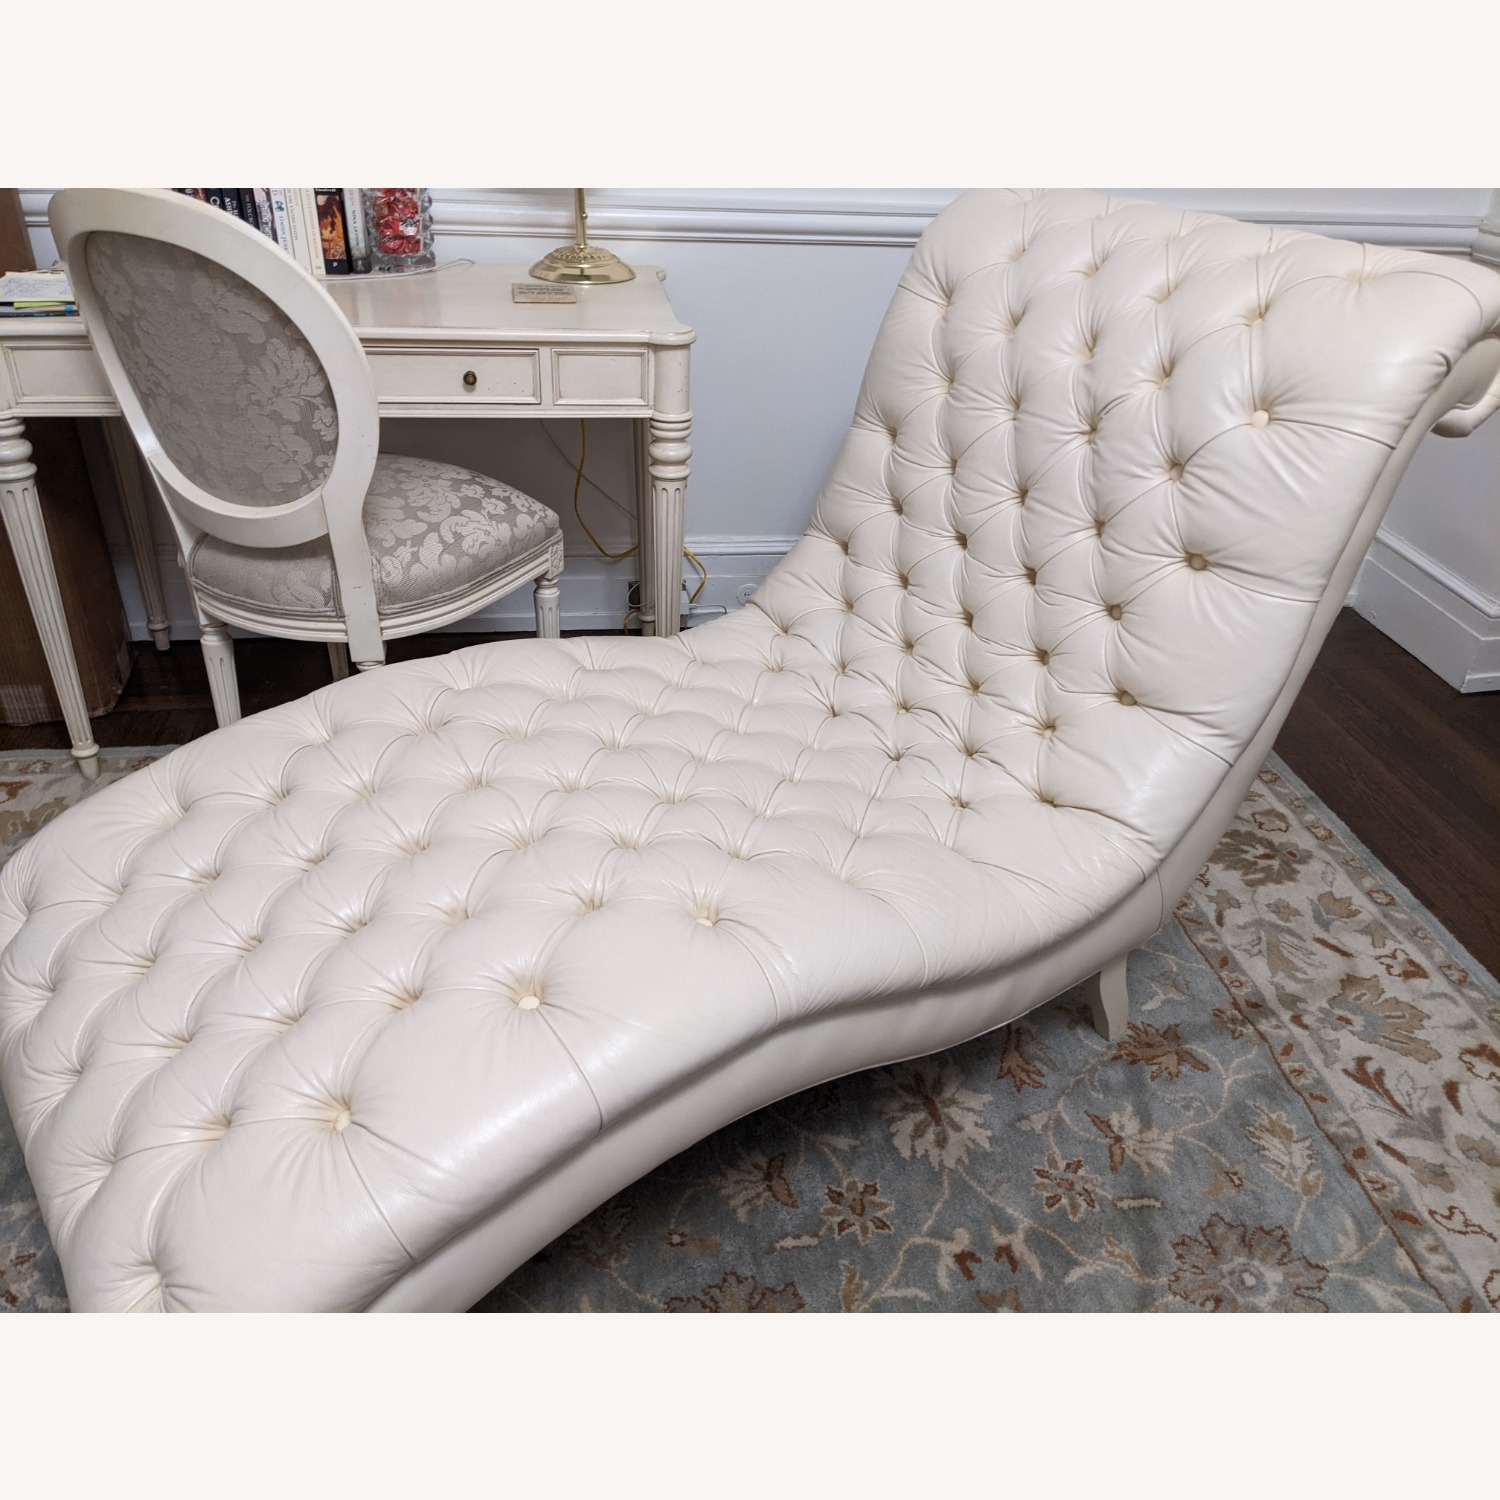 Ethan Allen Leather Chaise Long - image-6